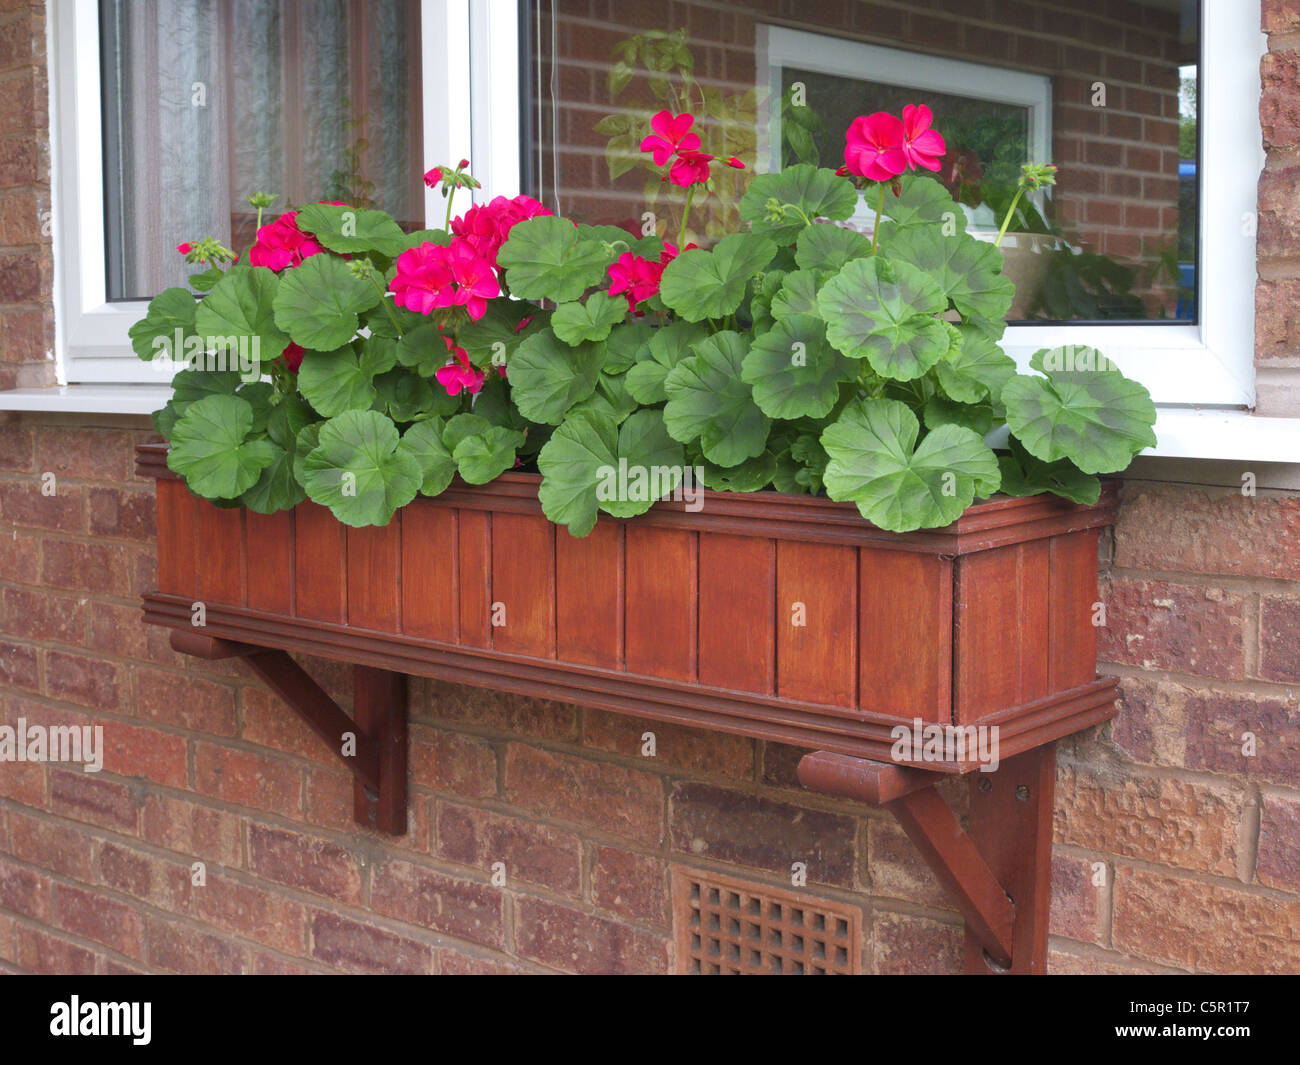 Wooden Window Box planted with Red Geraniums, UK Stock Photo